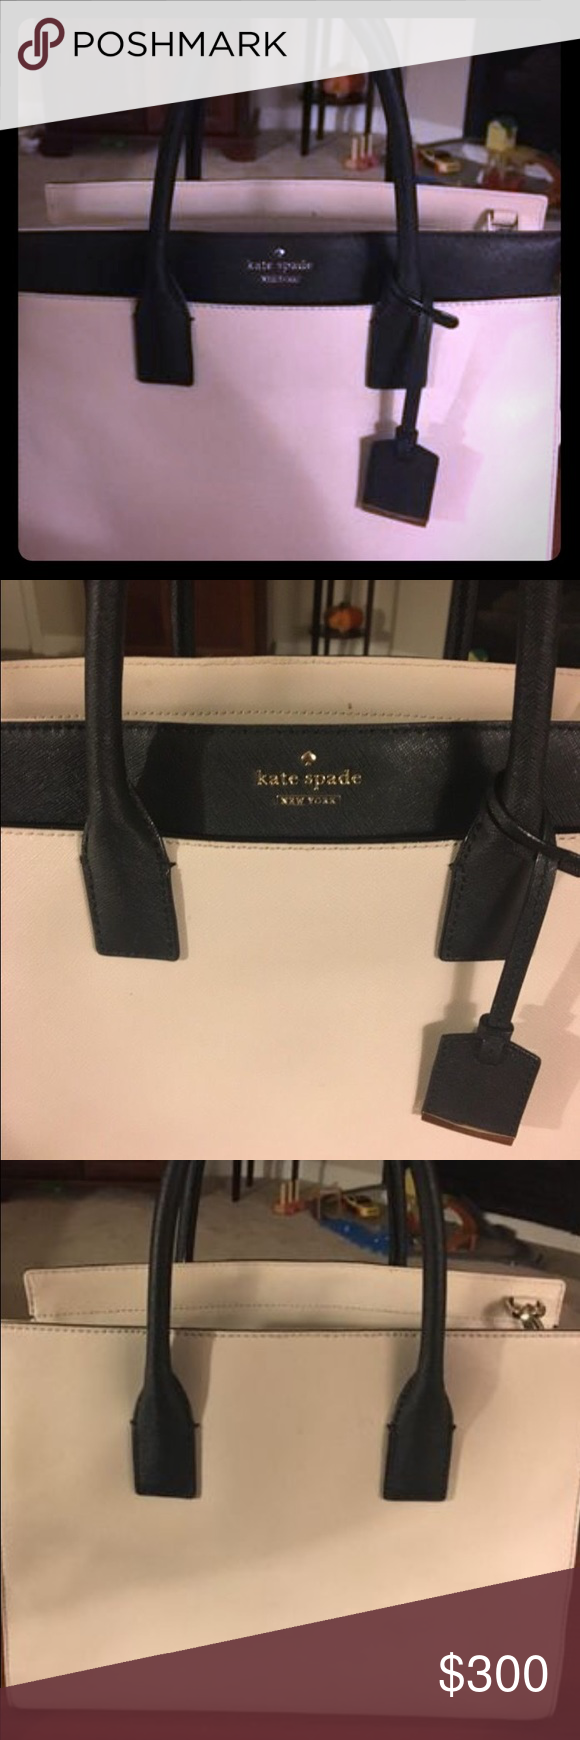 Kate Spade Cameron bag Kate Spade Cameron bag linen and cement black kate spade Bags Satchels